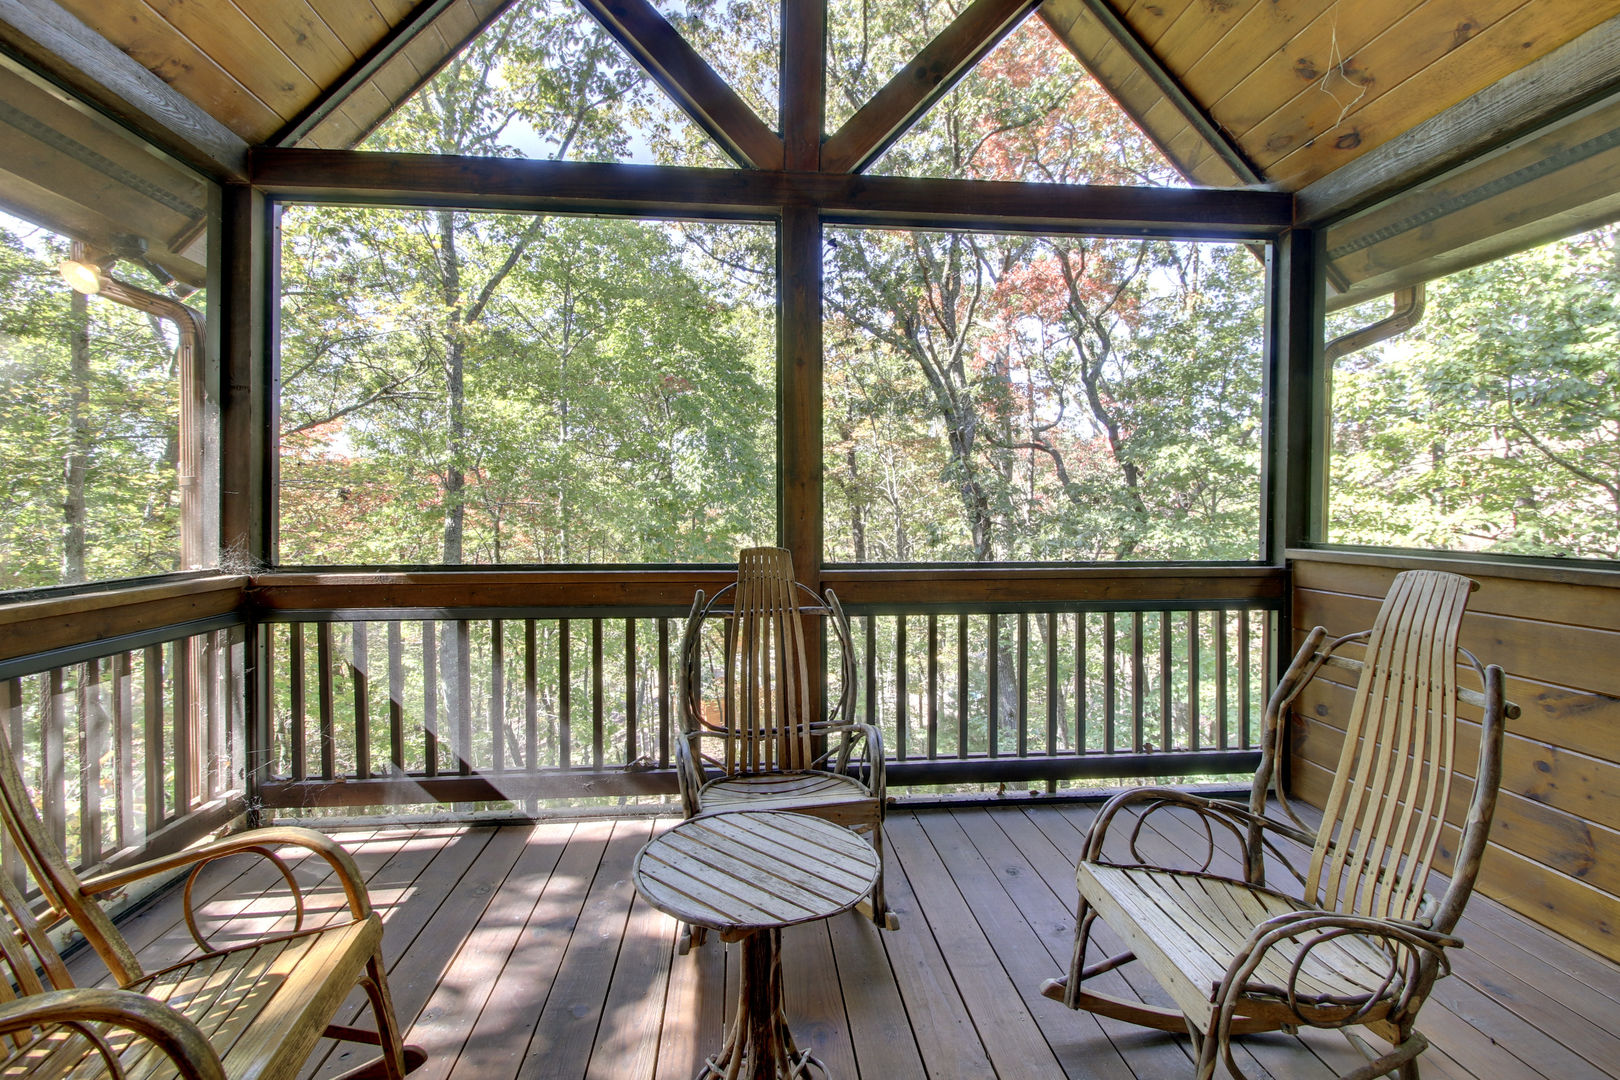 Amazing Serenity Woods Family 3 Bedroom Vacation Home Rental Blue Ridge Ga 137361 Find Rentals